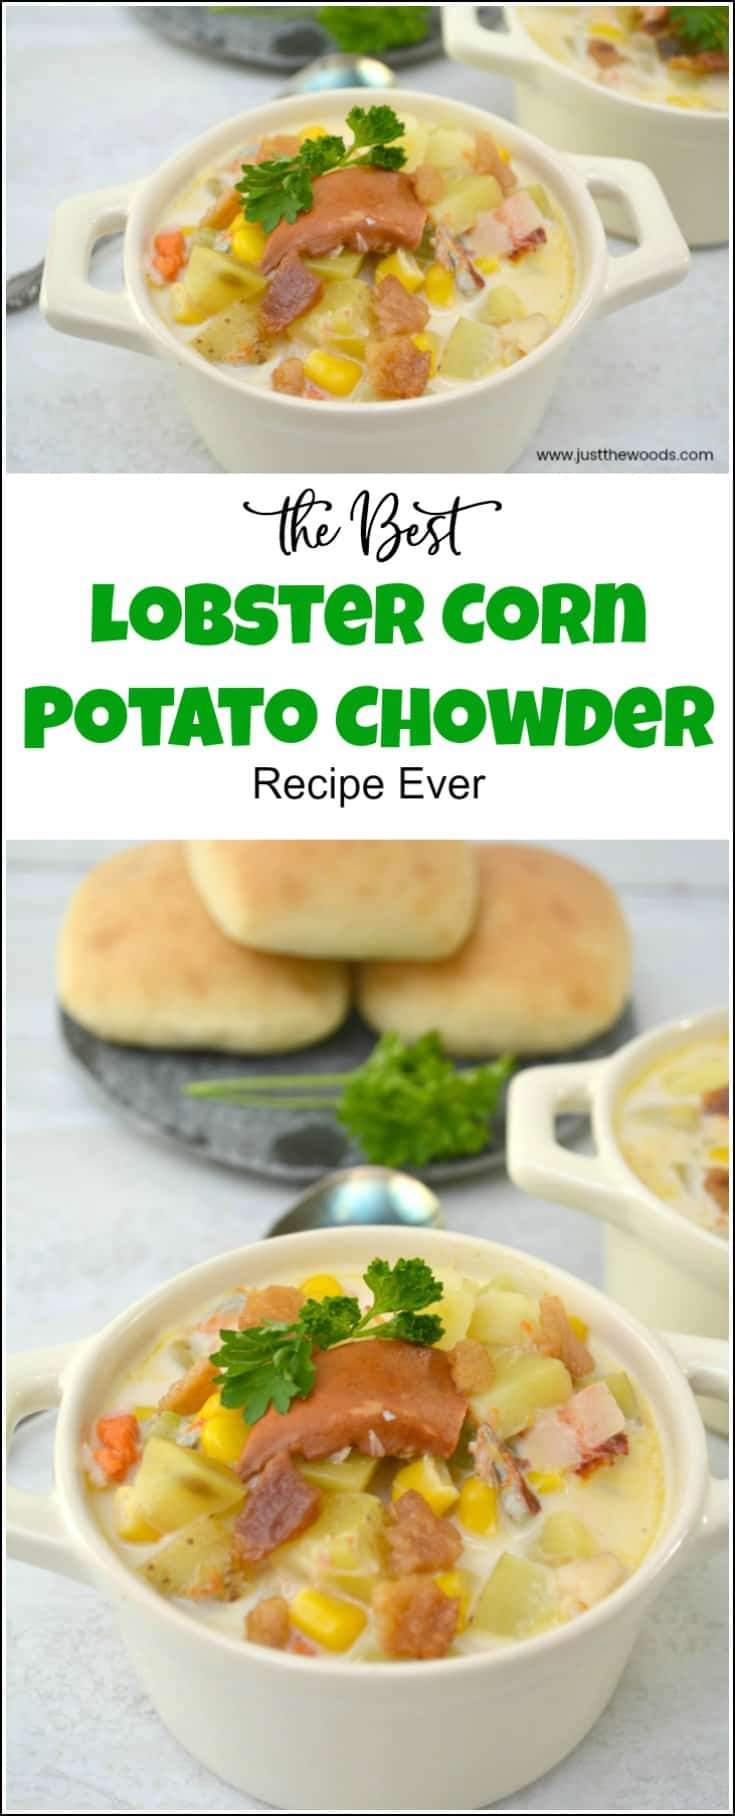 Lobster Corn Potato Chowder Recipe, how to make homemade chowder